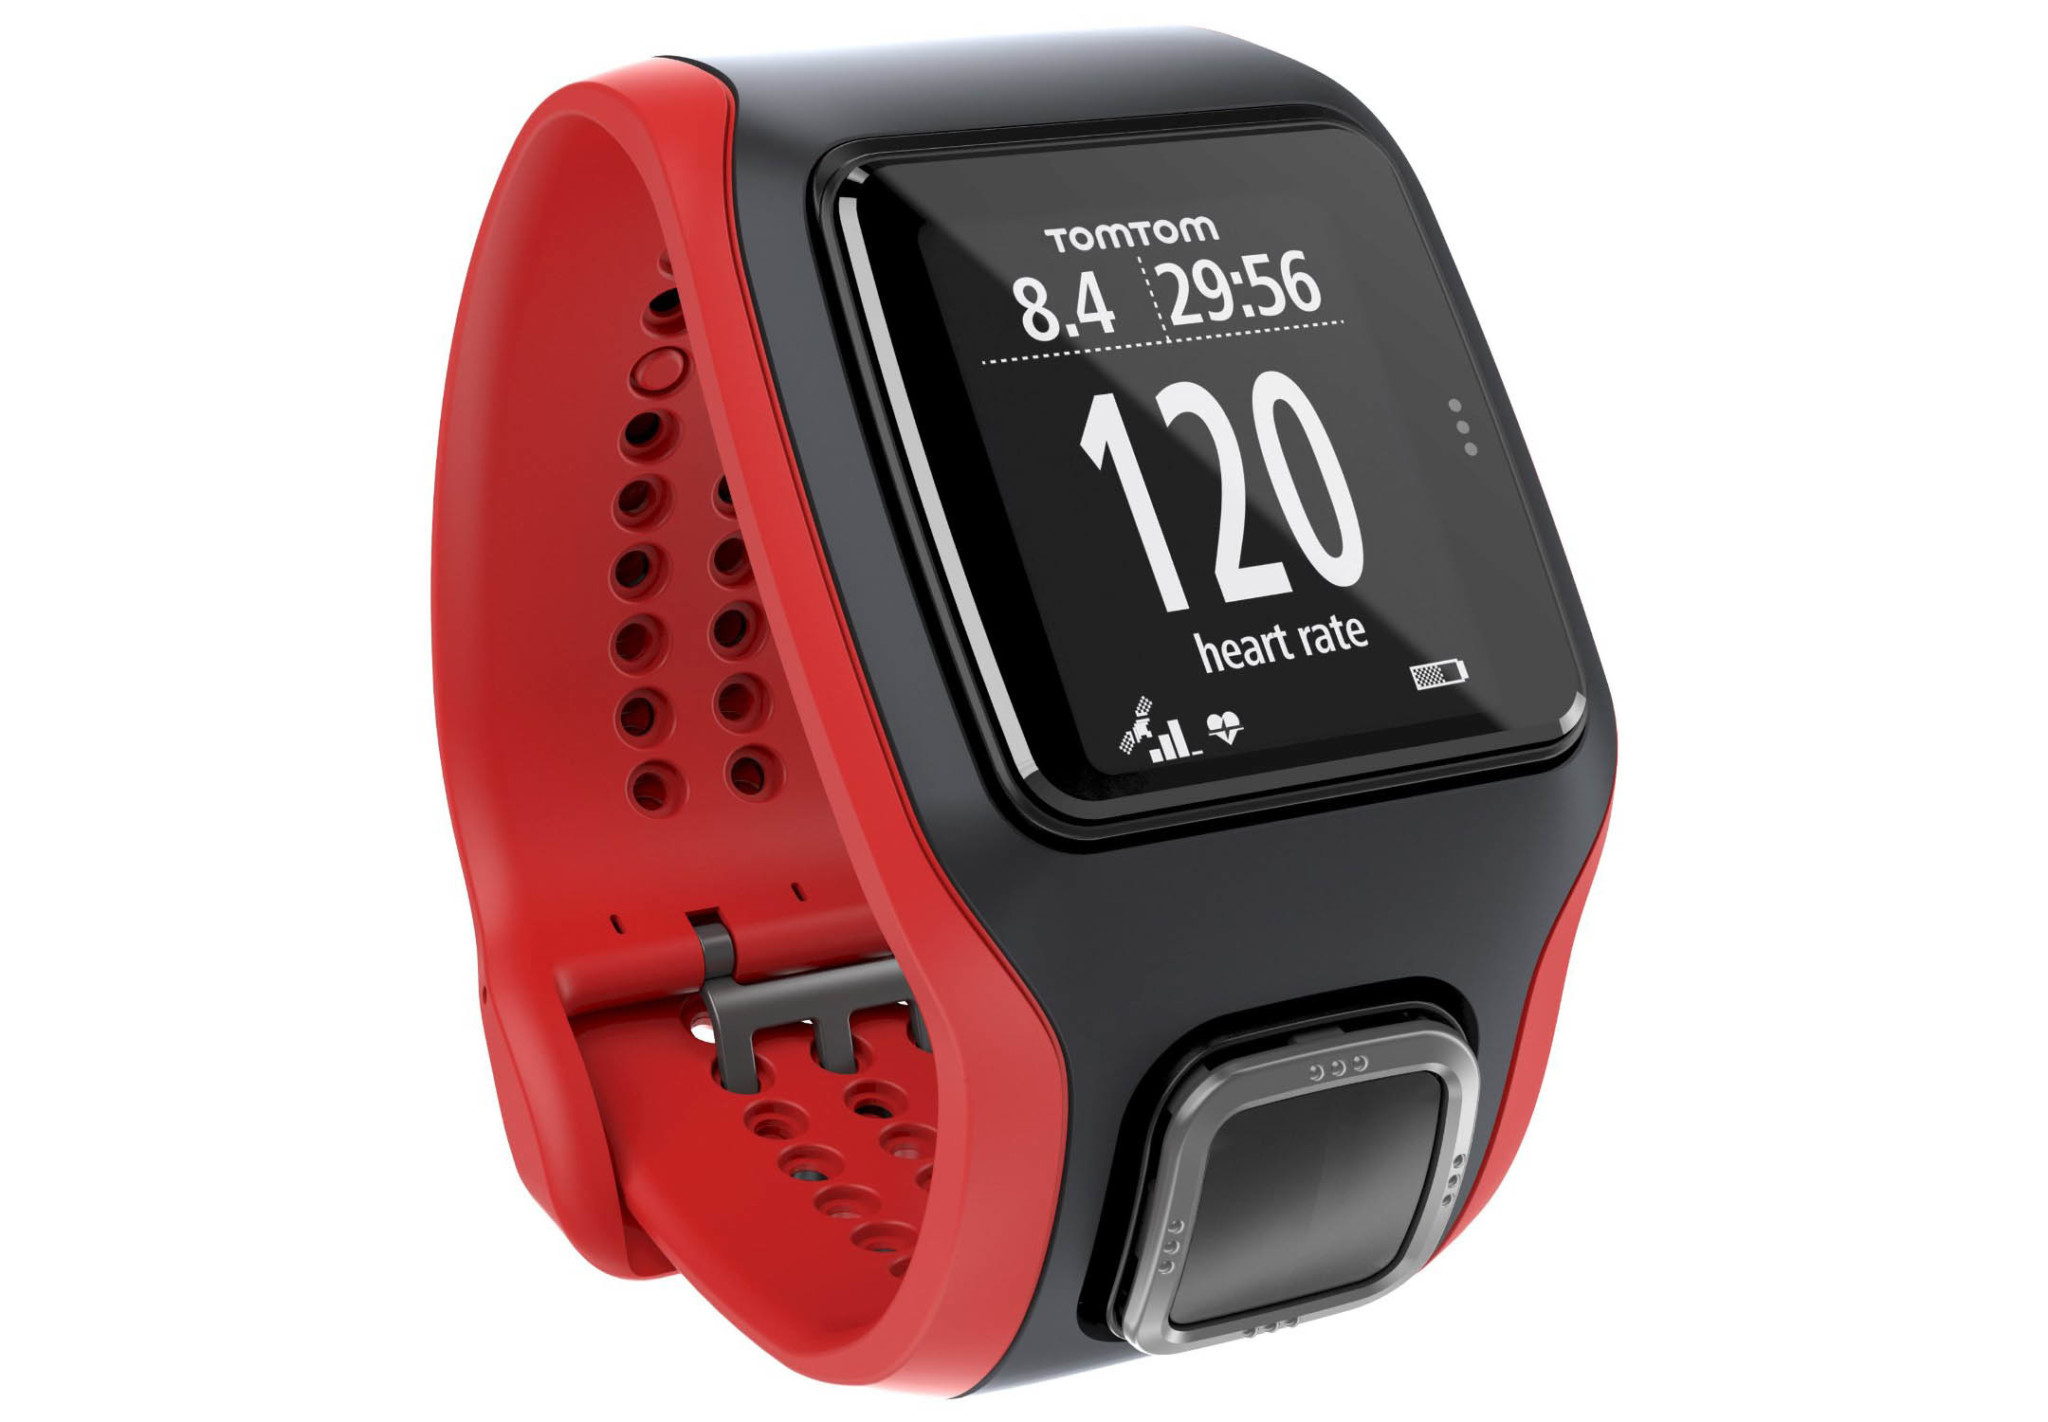 tomtom-cardio-review-featured